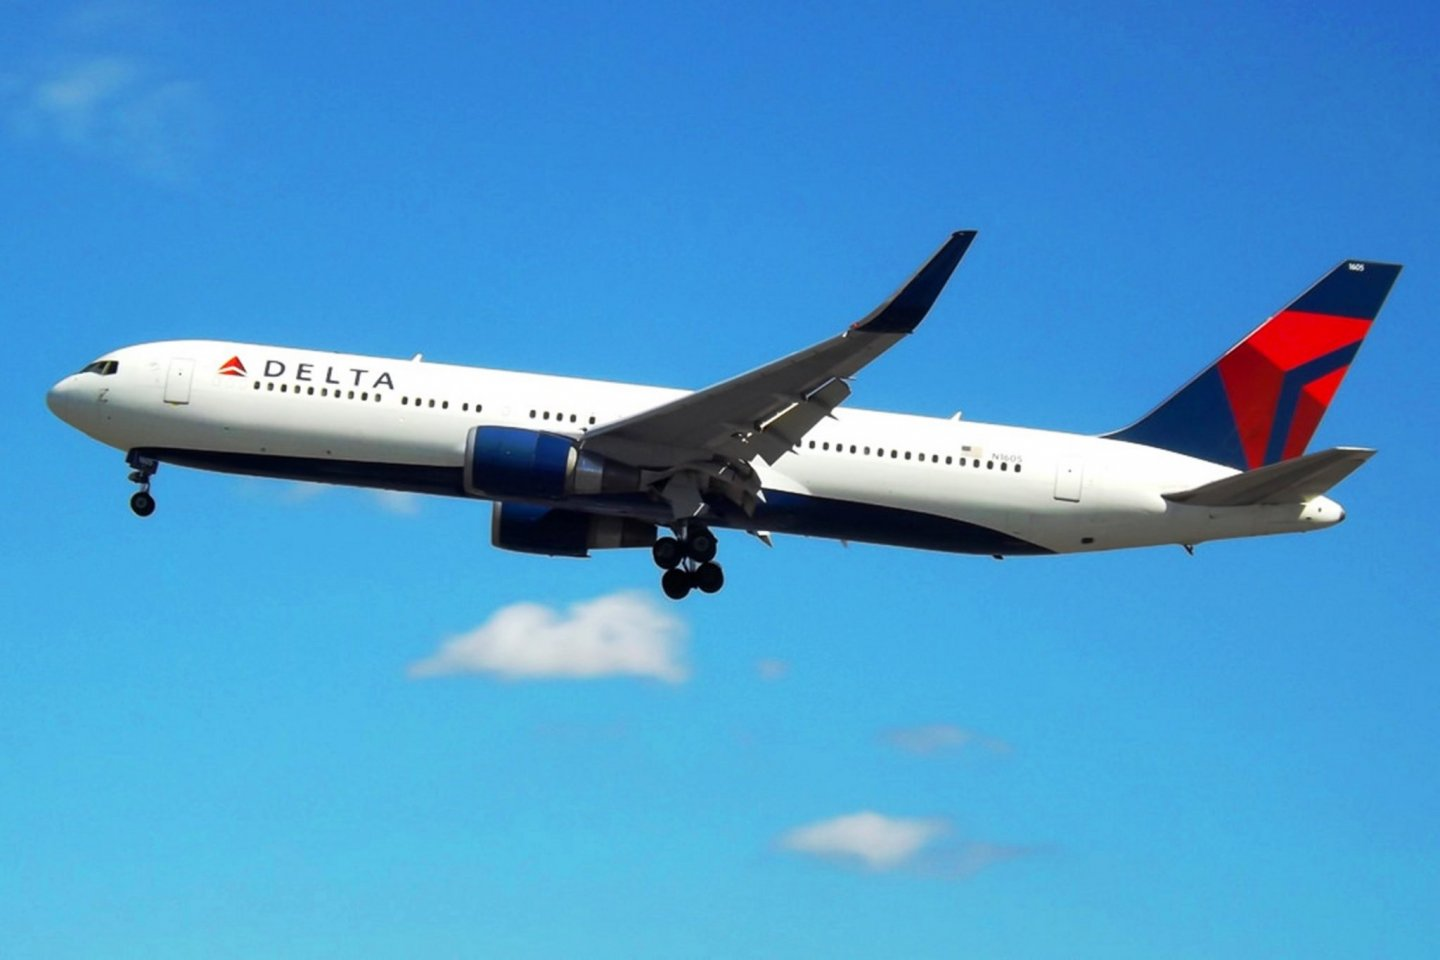 Delta has plans to operate the Kansai route with the Boeing 767